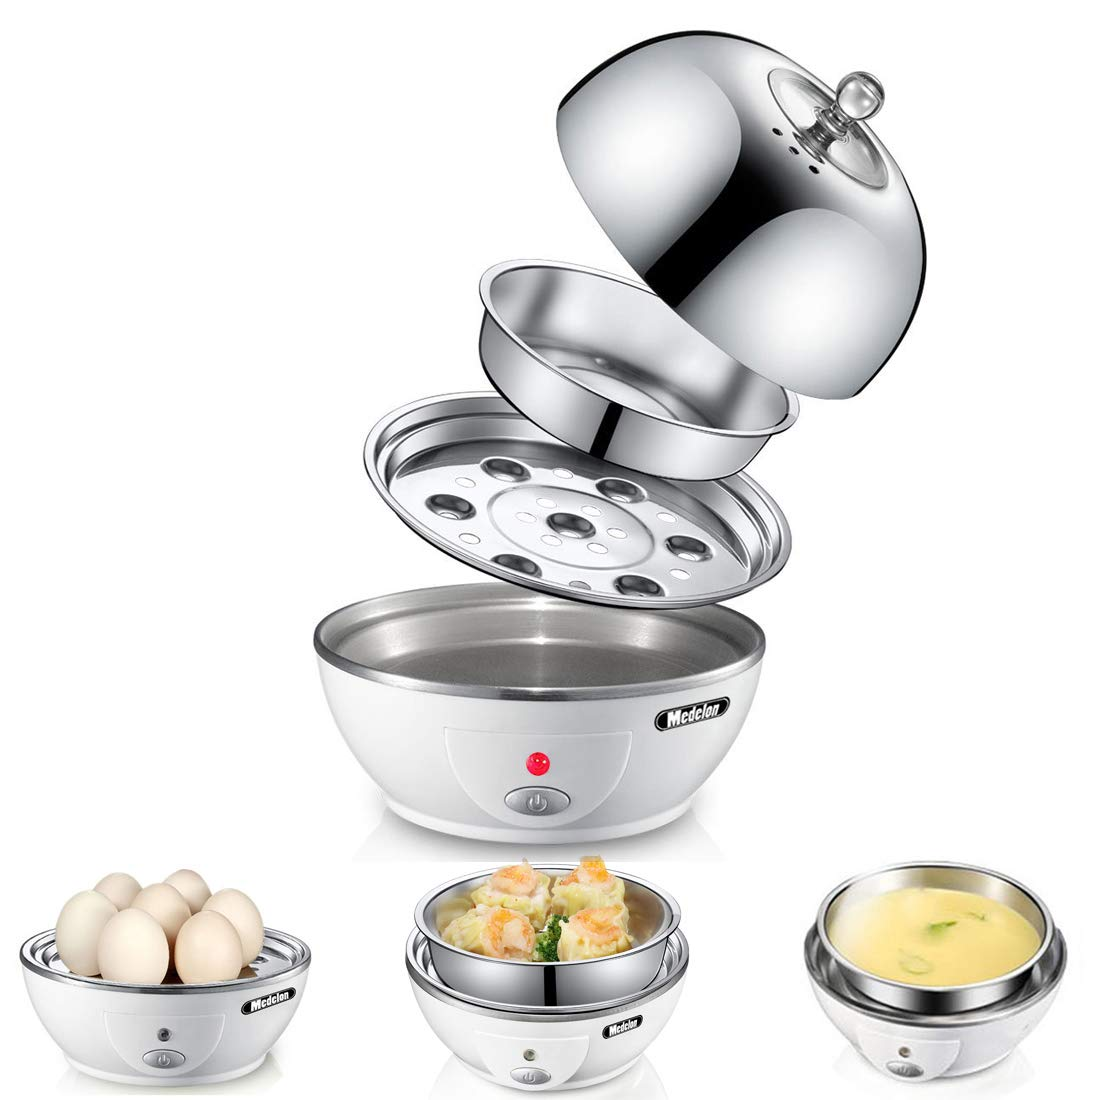 Medelon Egg Boiler, Egg Cooker, Ideal Soft and Hard Boiled Egg Cooker 7 Egg Capacity - with Removable Tray & Auto Shut Off Feature - White